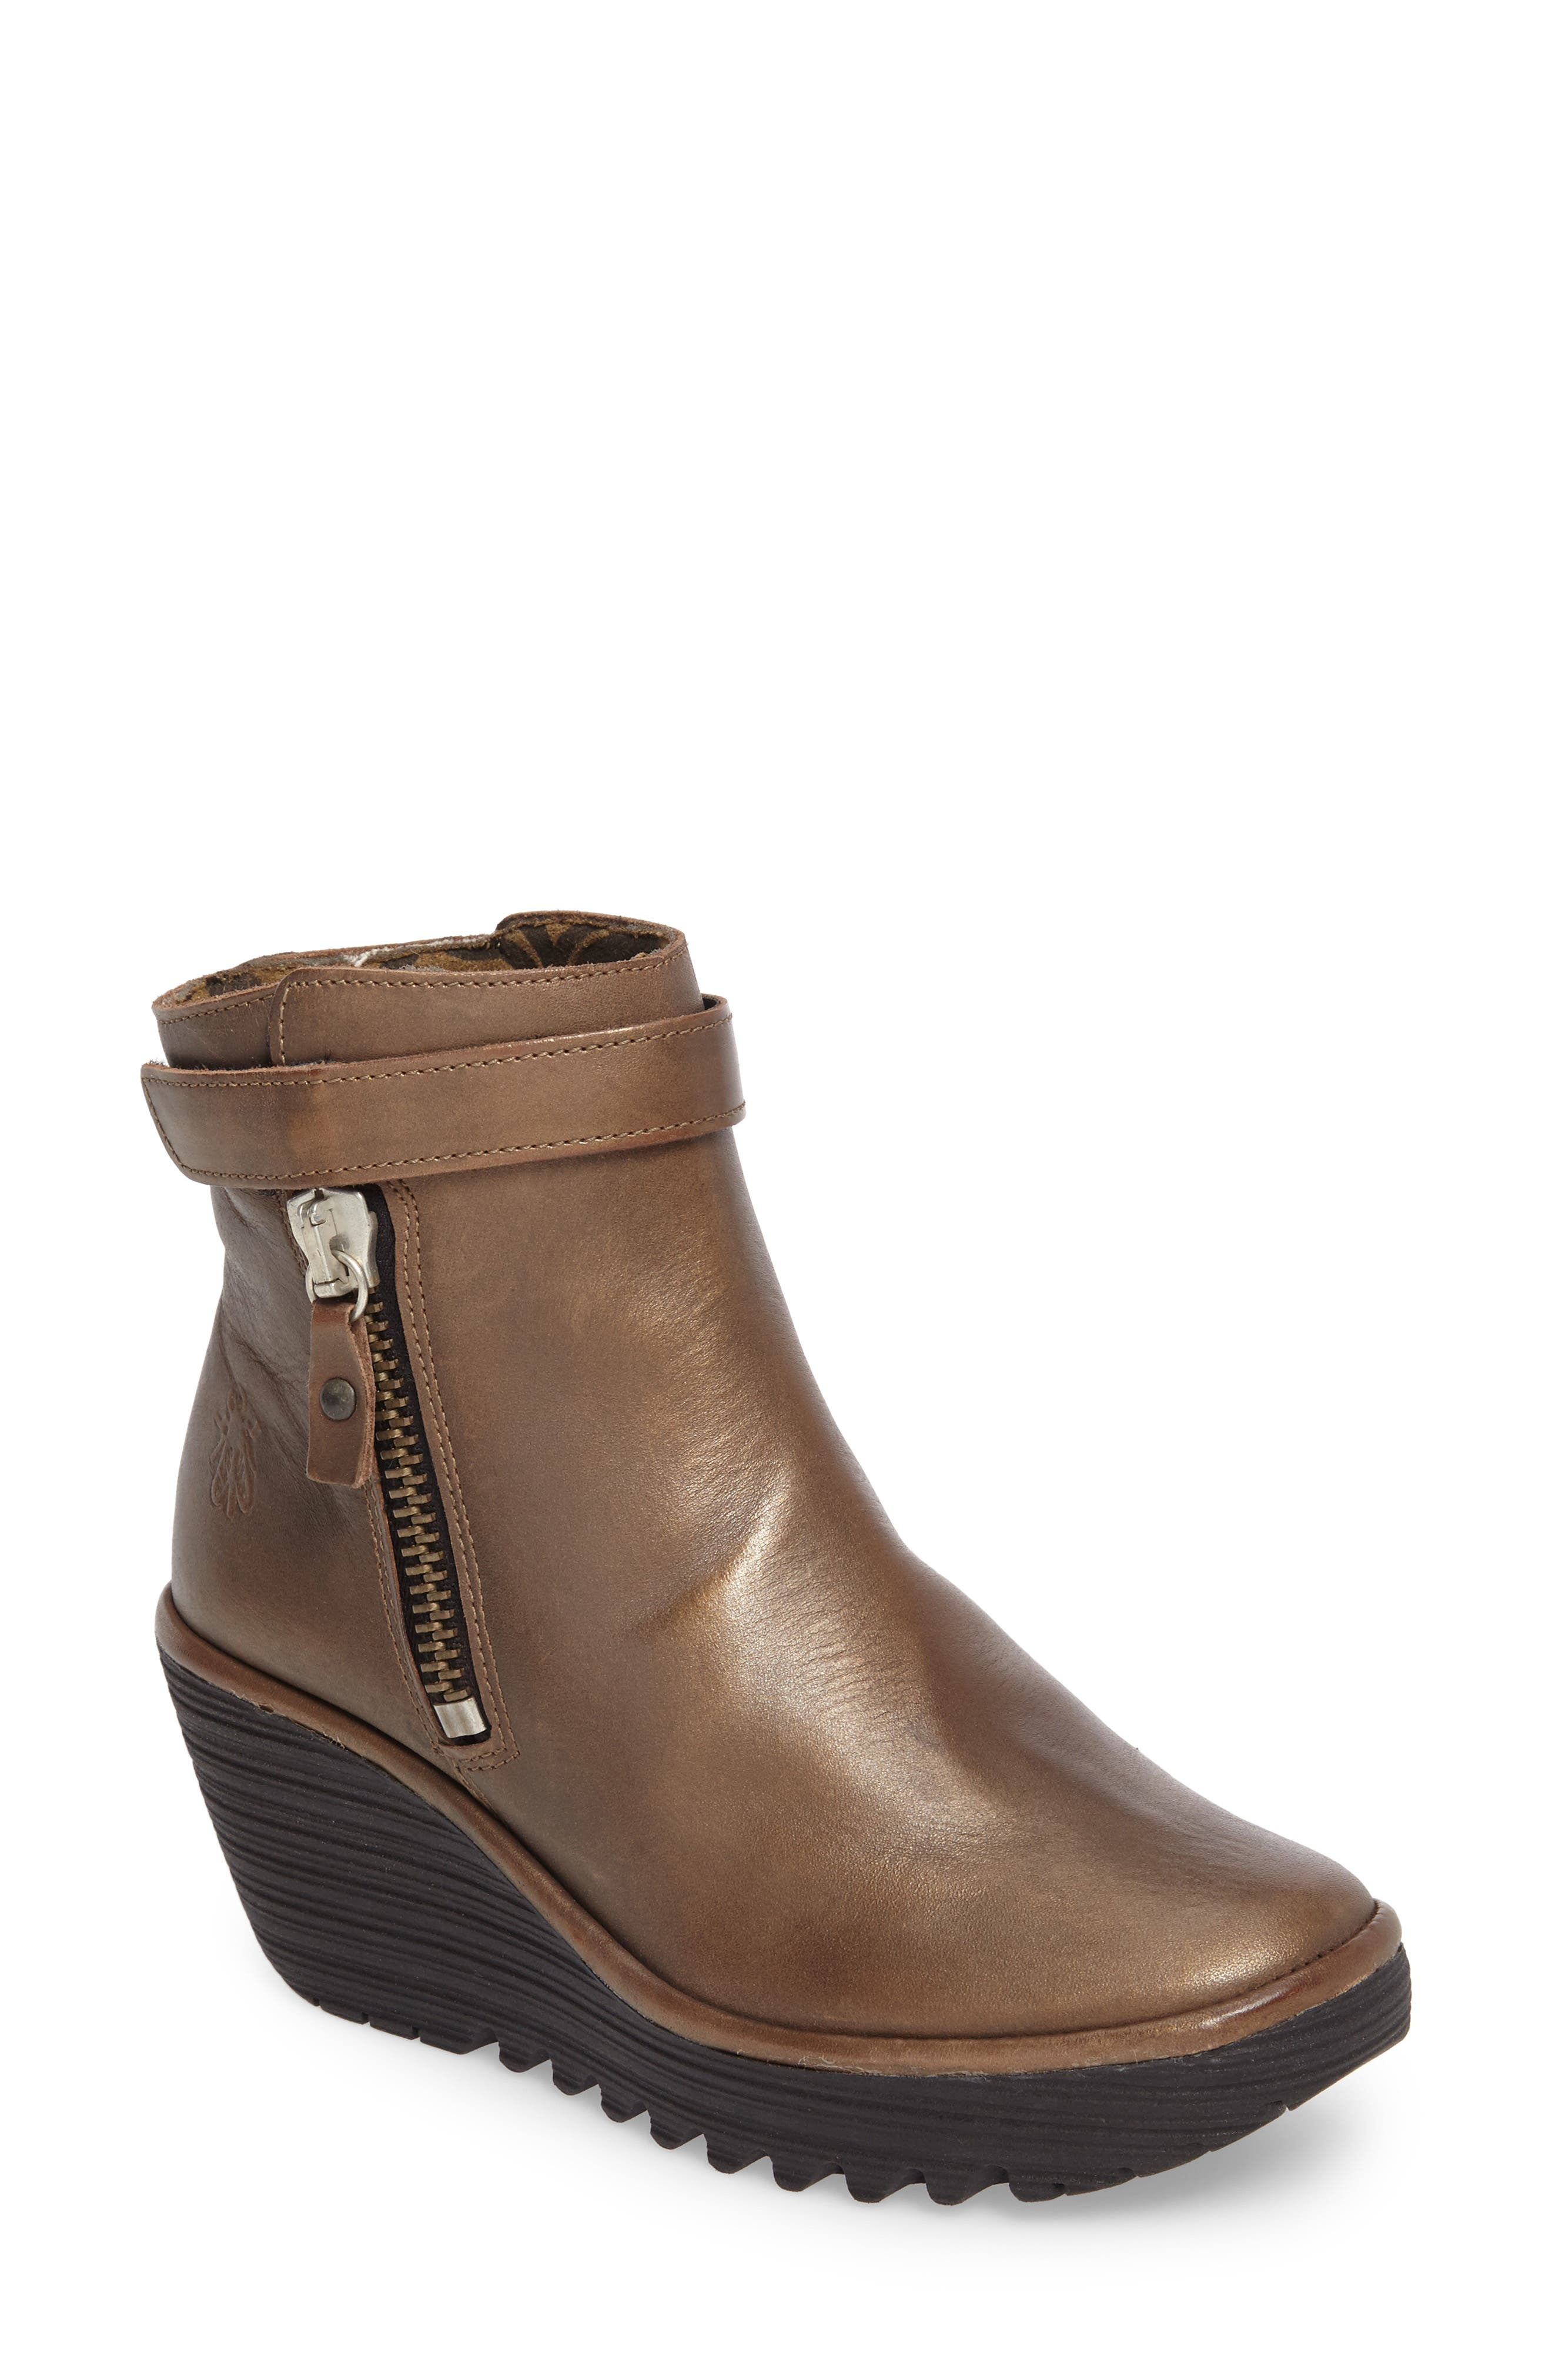 'Yava' Bootie,                             Main thumbnail 1, color,                             Olive Grace Leather